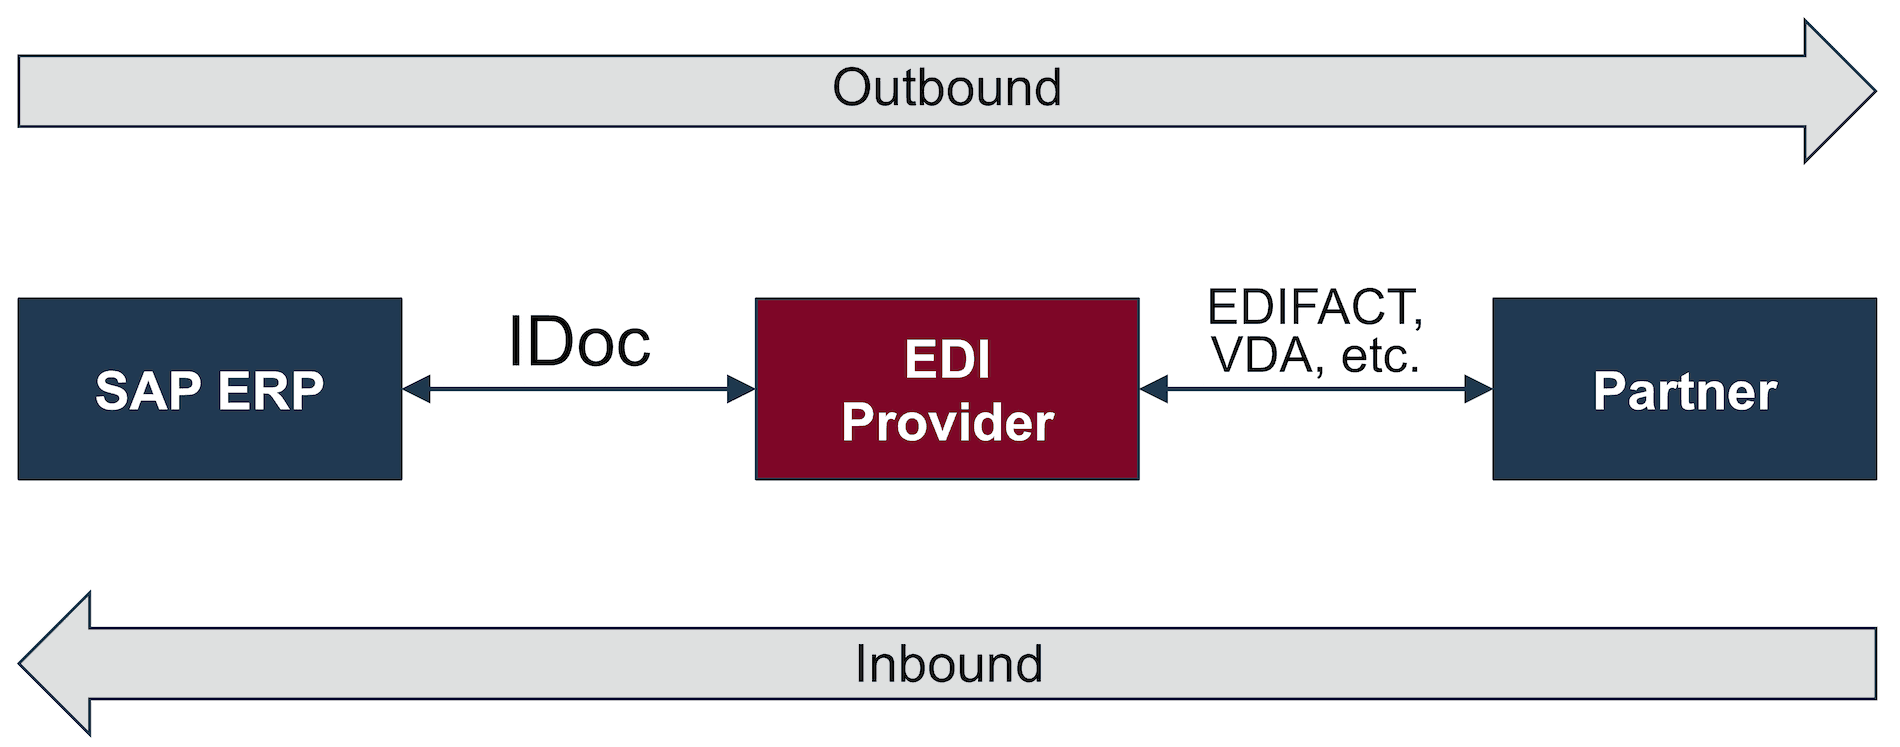 SAP ERP: In- and Outbound IDocs